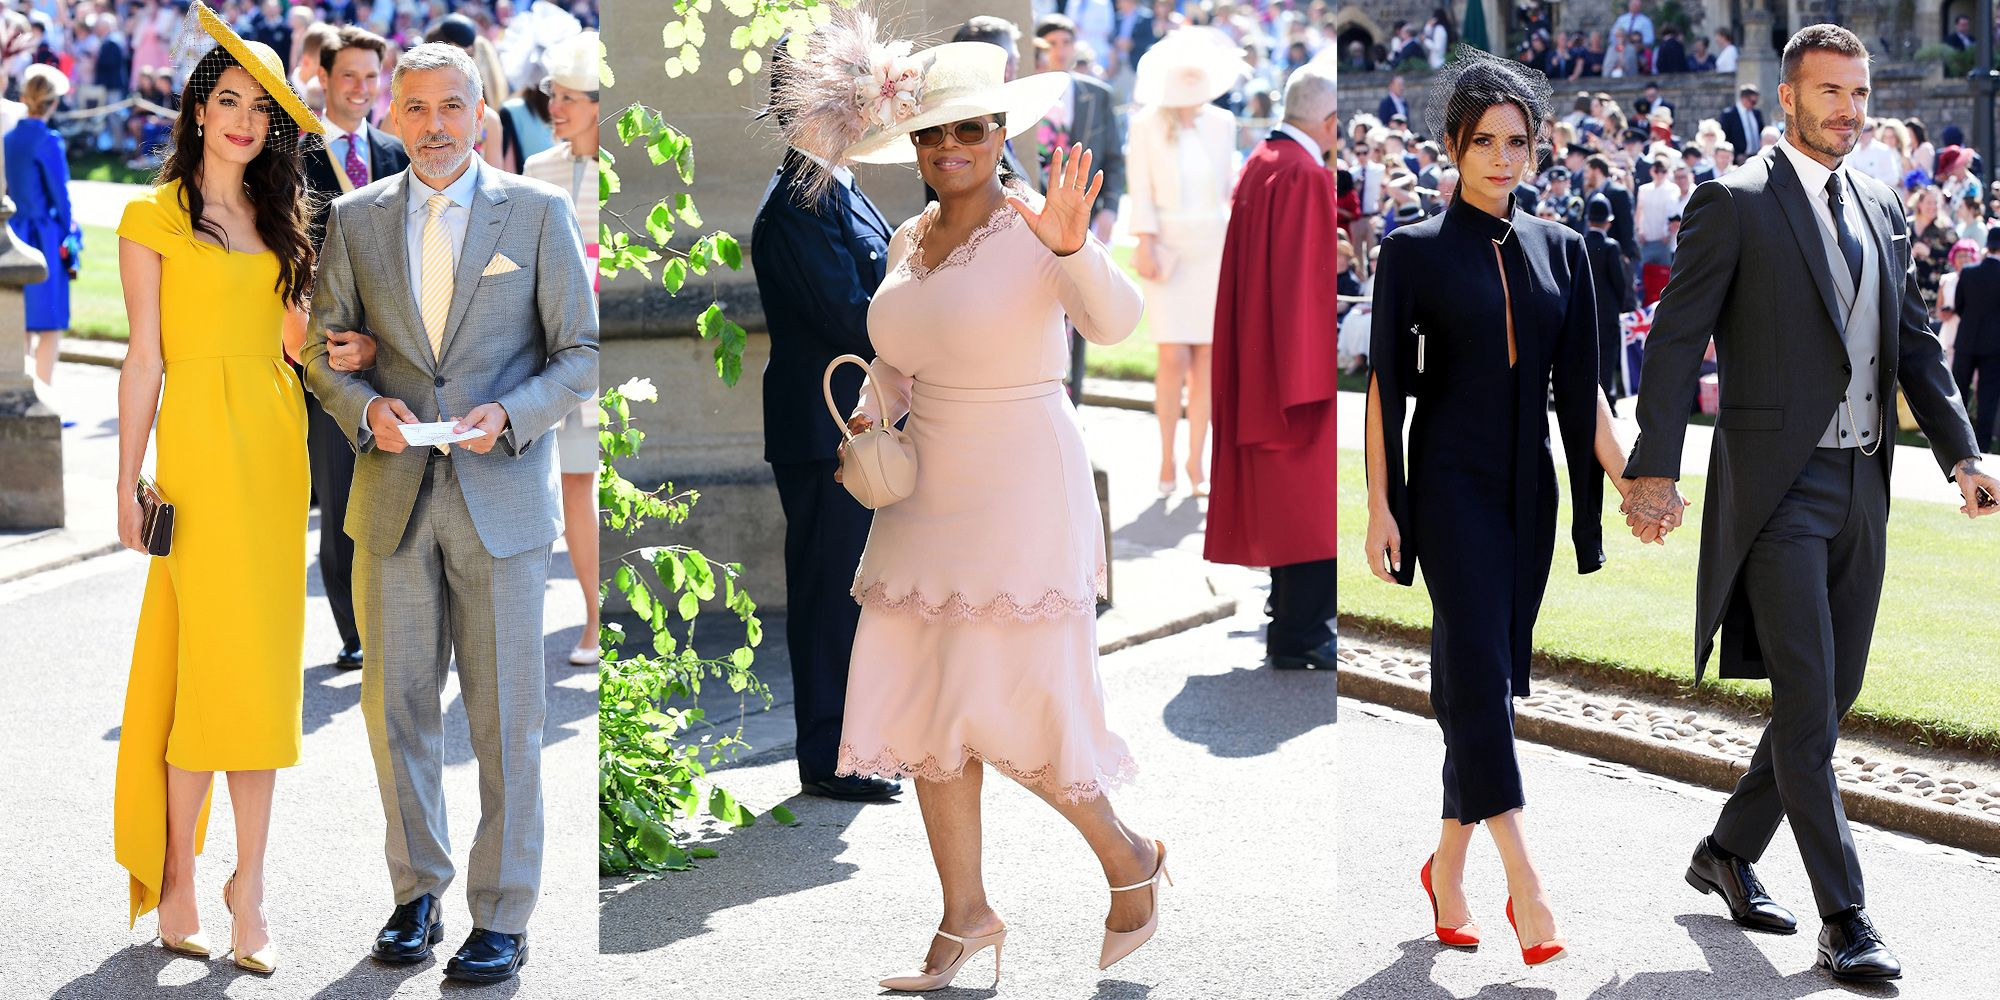 all celebrities at royal wedding celeb meghan markle prince harry wedding guests meghan markle prince harry wedding guests